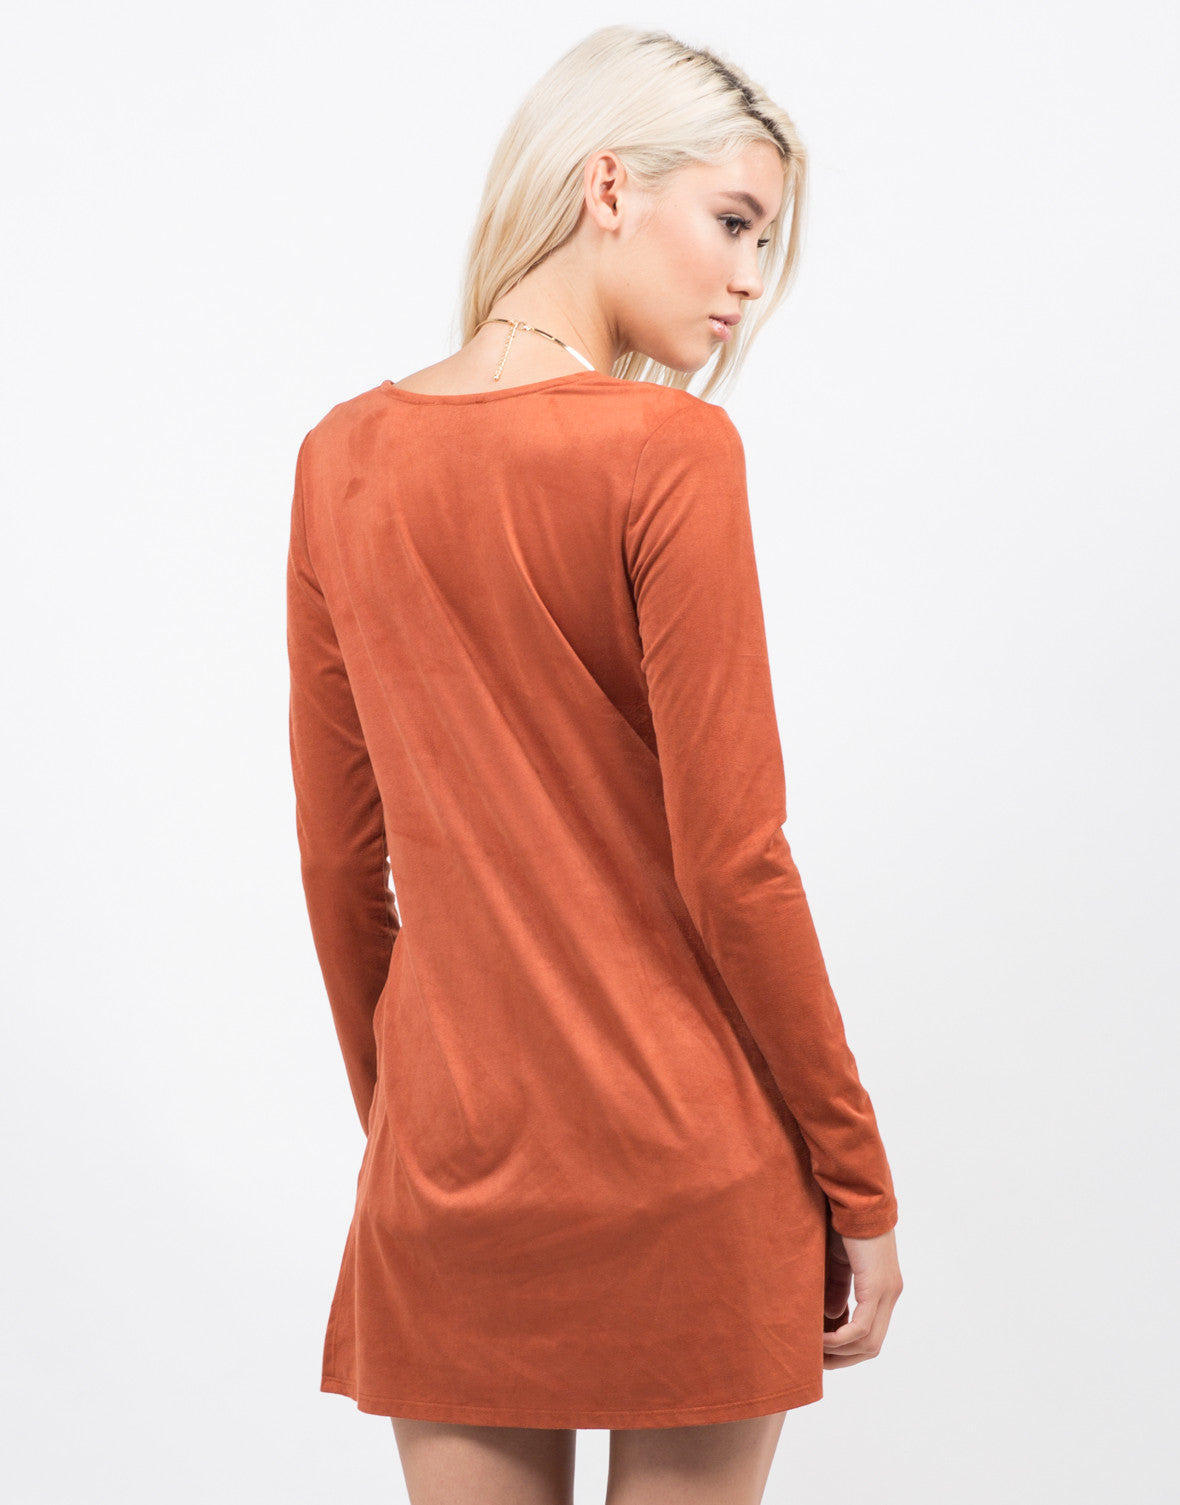 Back View of Suede Lace Up Slit Top